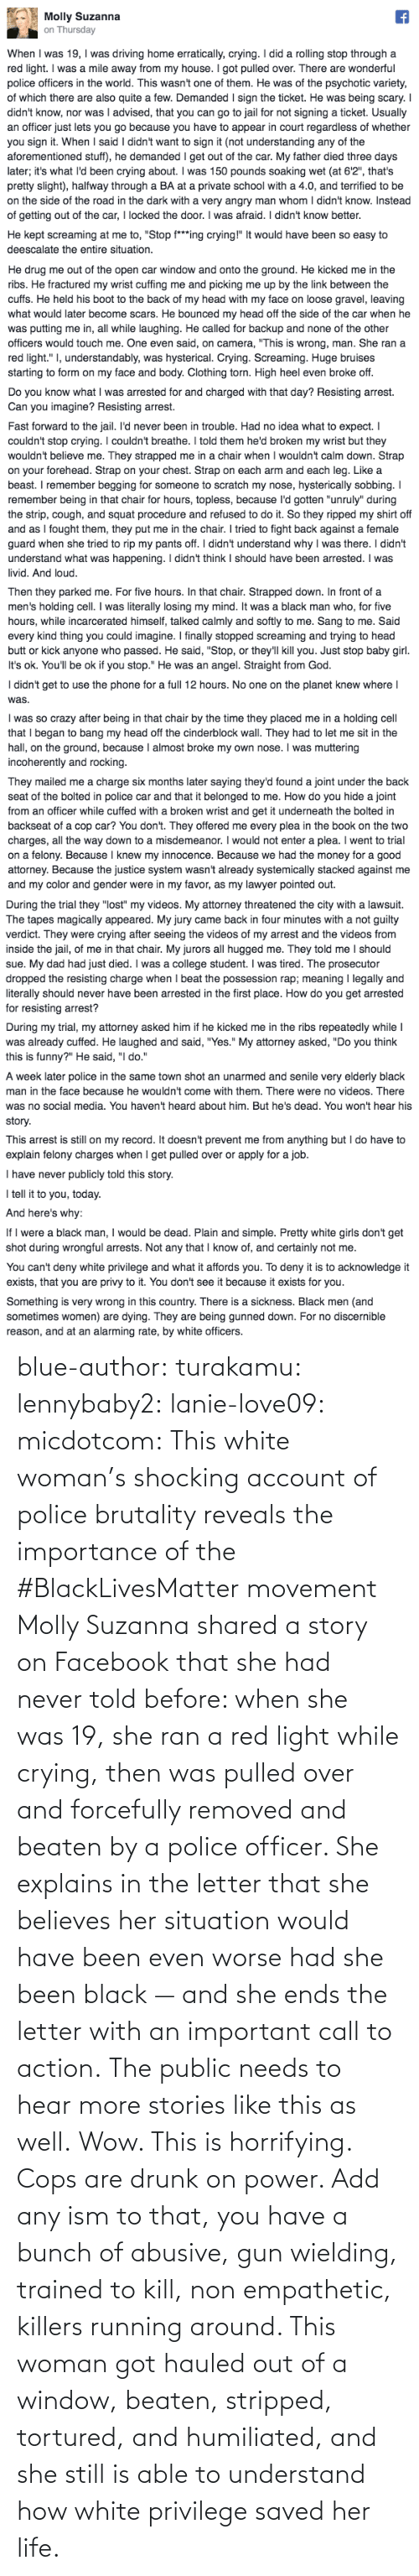 cops: blue-author: turakamu:  lennybaby2:  lanie-love09:  micdotcom:  This white woman's shocking account of police brutality reveals the importance of the #BlackLivesMatter movement Molly Suzanna shared a story on Facebook that she had never told before: when she was 19, she ran a red light while crying, then was pulled over and forcefully removed and beaten by a police officer. She explains in the letter that she believes her situation would have been even worse had she been black — and she ends the letter with an important call to action.  The public needs to hear more stories like this as well.  Wow. This is horrifying.  Cops are drunk on power. Add any ism to that, you have a bunch of abusive, gun wielding, trained to kill, non empathetic, killers running around.    This woman got hauled out of a window, beaten, stripped, tortured, and humiliated, and she still is able to understand how white privilege saved her life.